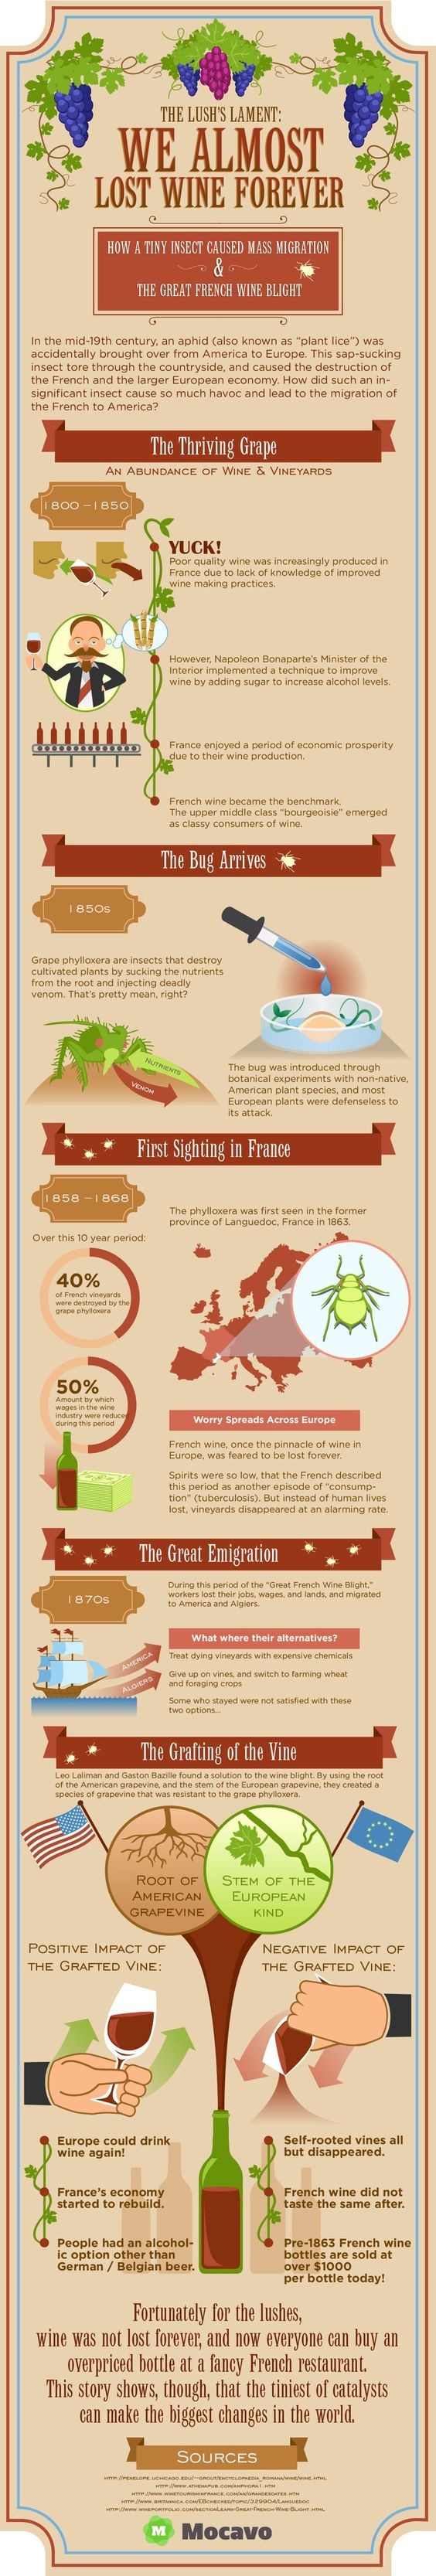 Before we worried about global warming taking wine away from us in the 21st century, a tiny insect nearly demolished the French wine industry in the 19th century #wine #wineeducation